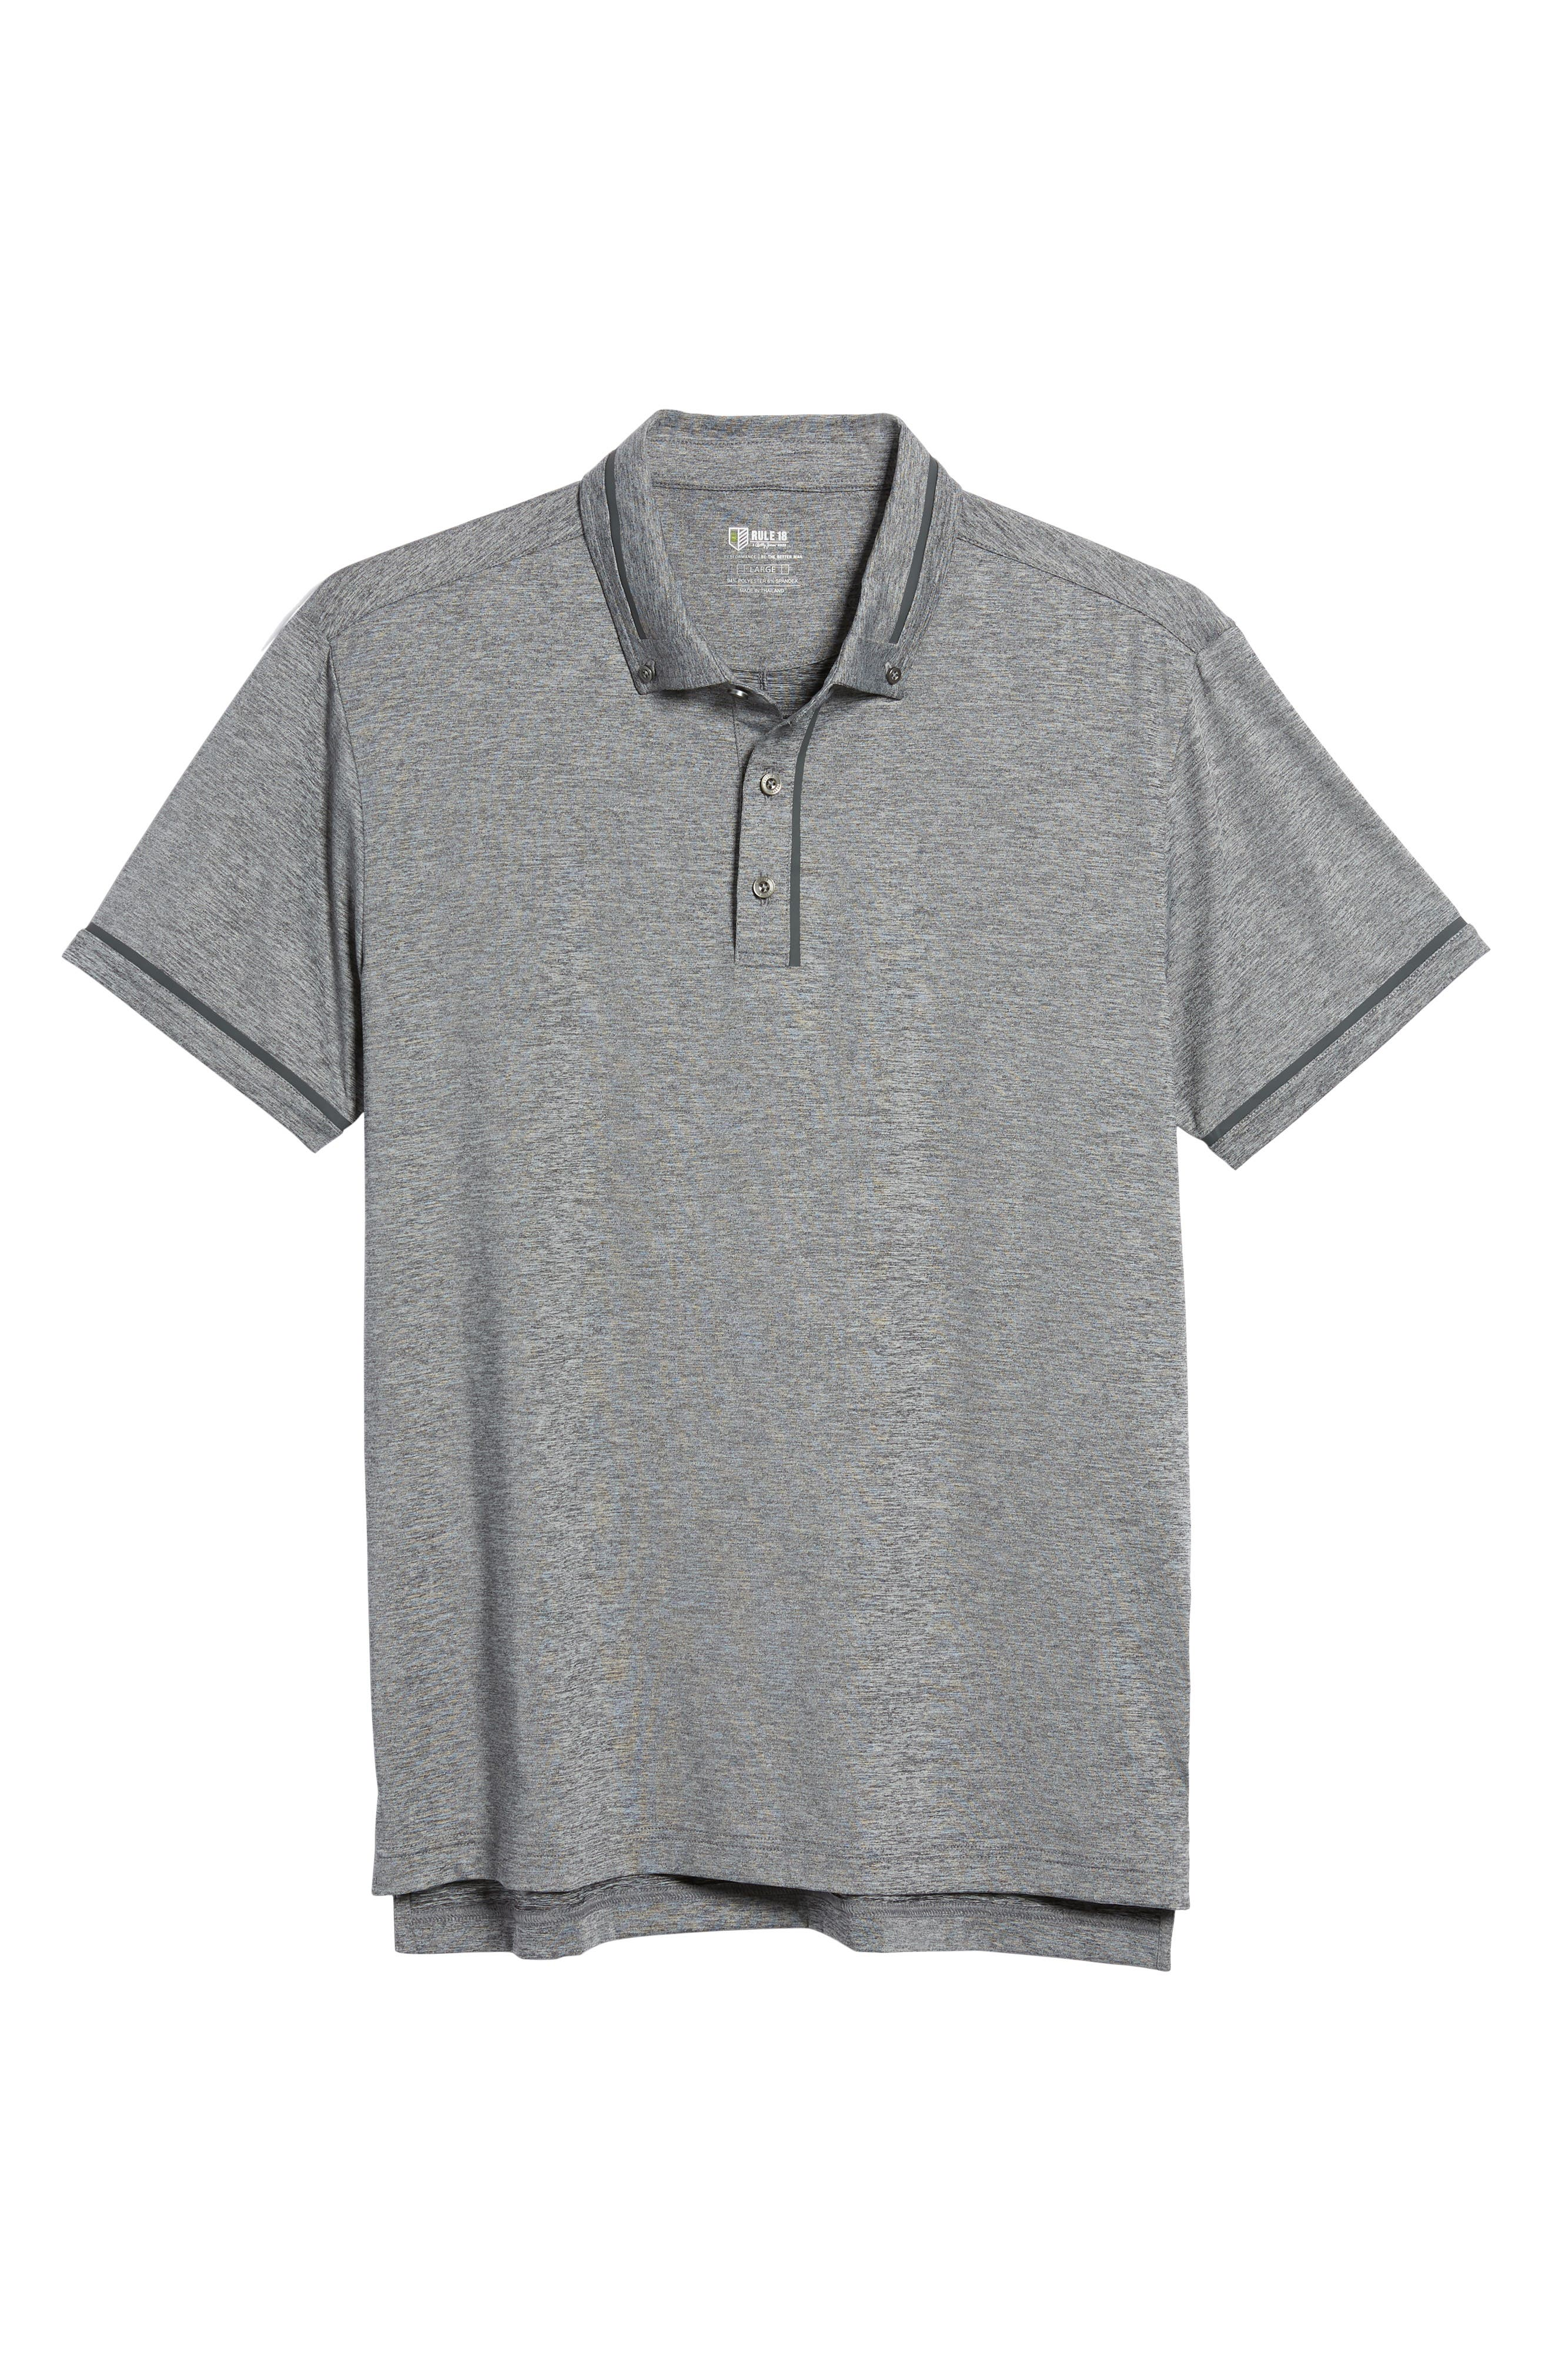 R18 Tech Chapman Welded Trim Polo,                             Alternate thumbnail 6, color,                             CHARCOAL HEATHER